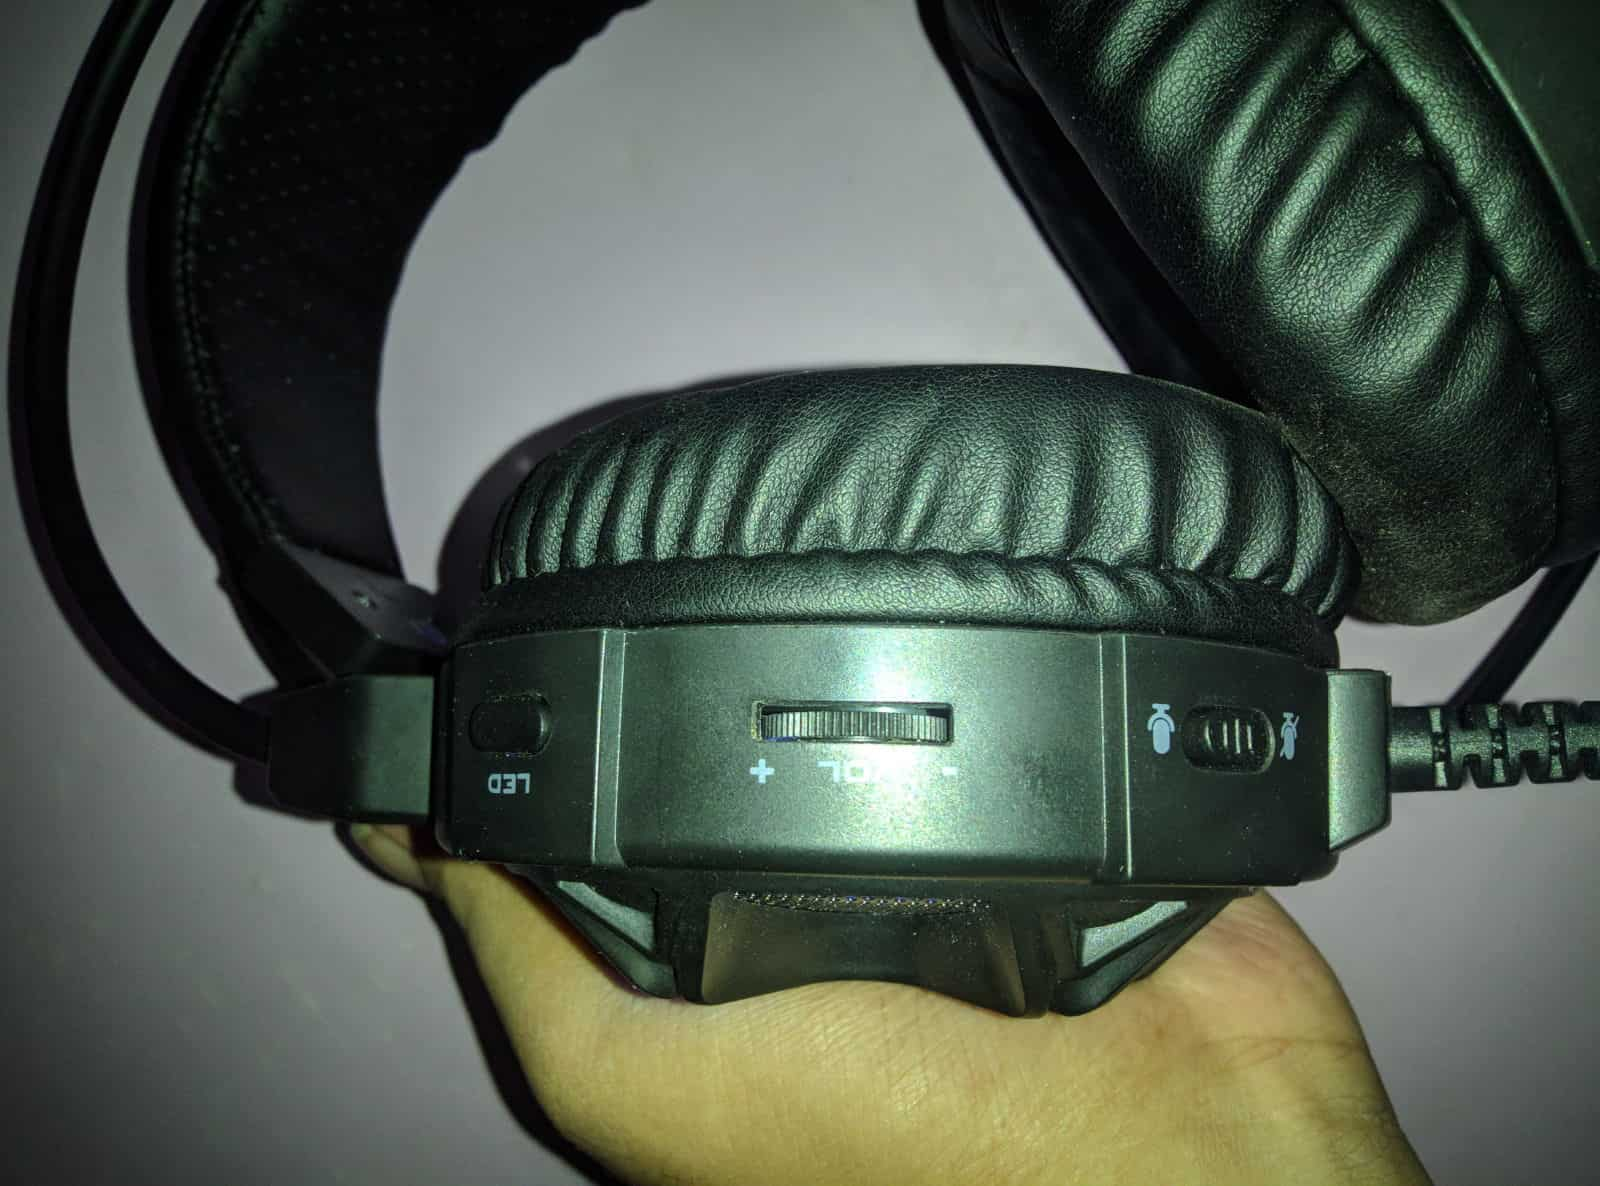 A Cheap $25 Gaming Headset Surprised Me This Time - 3